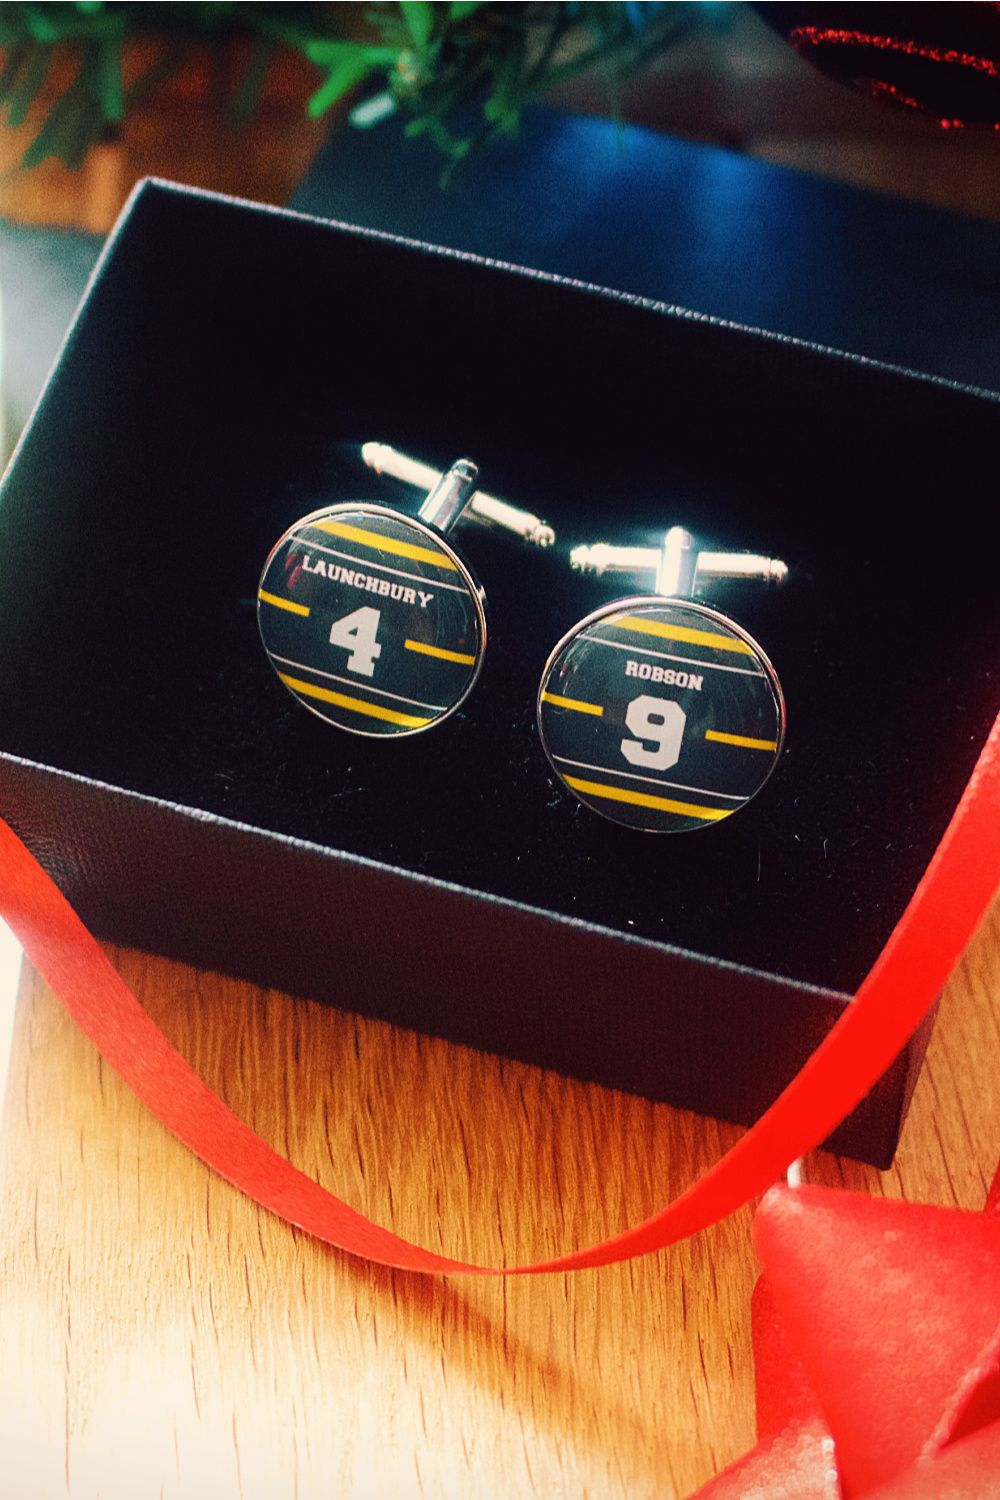 Wasps Rugby Cufflinks Personalised Sports Team Name Number Favourite Player Your Name Xmas Gift Unique Personalized Gift Rugby Gifts Unique Items Products